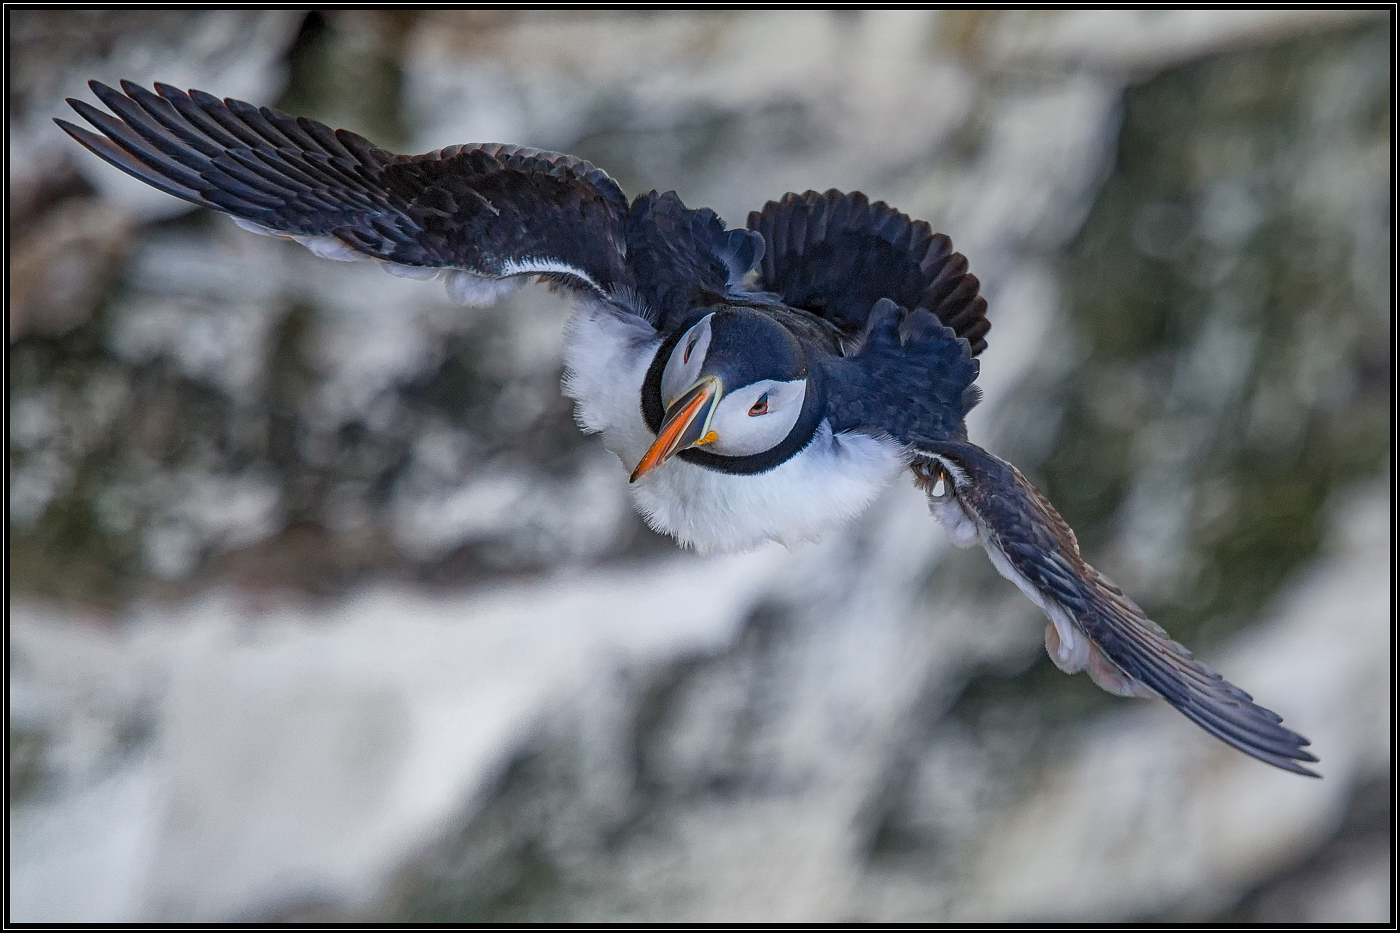 2_puffin on the wing_jhs.jpg